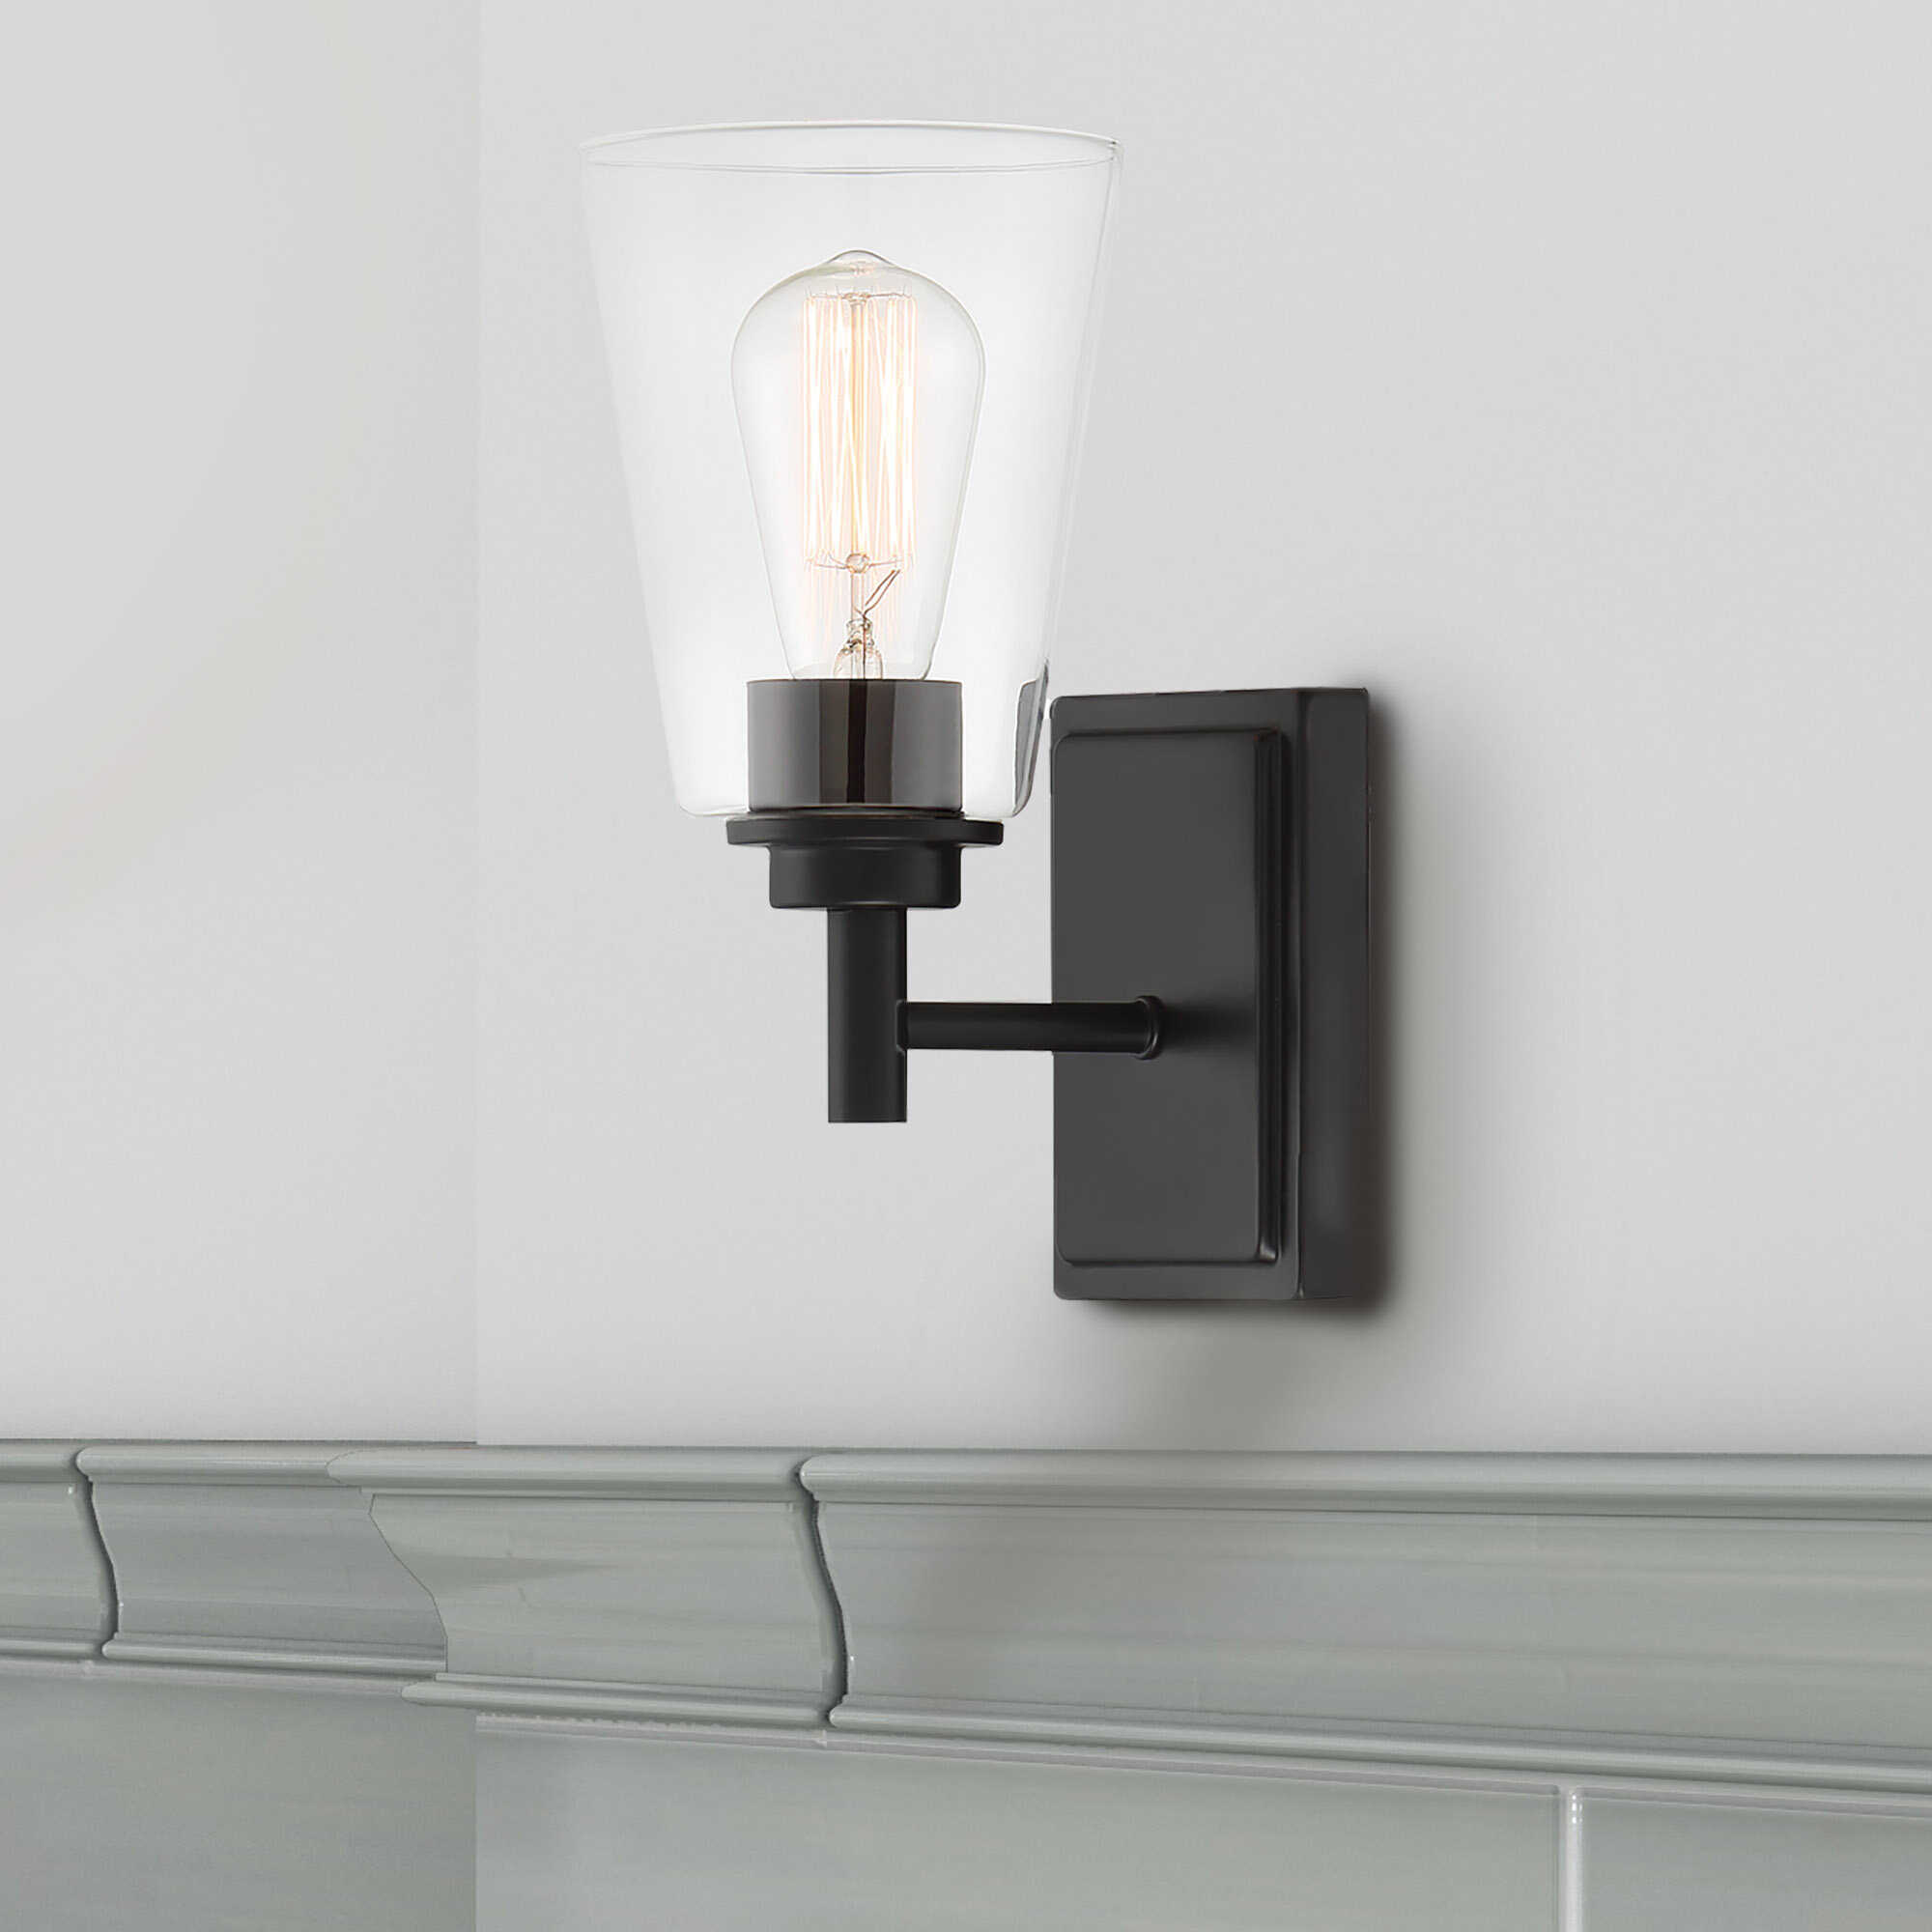 Wayfair Black Wall Sconces You Ll Love In 2021